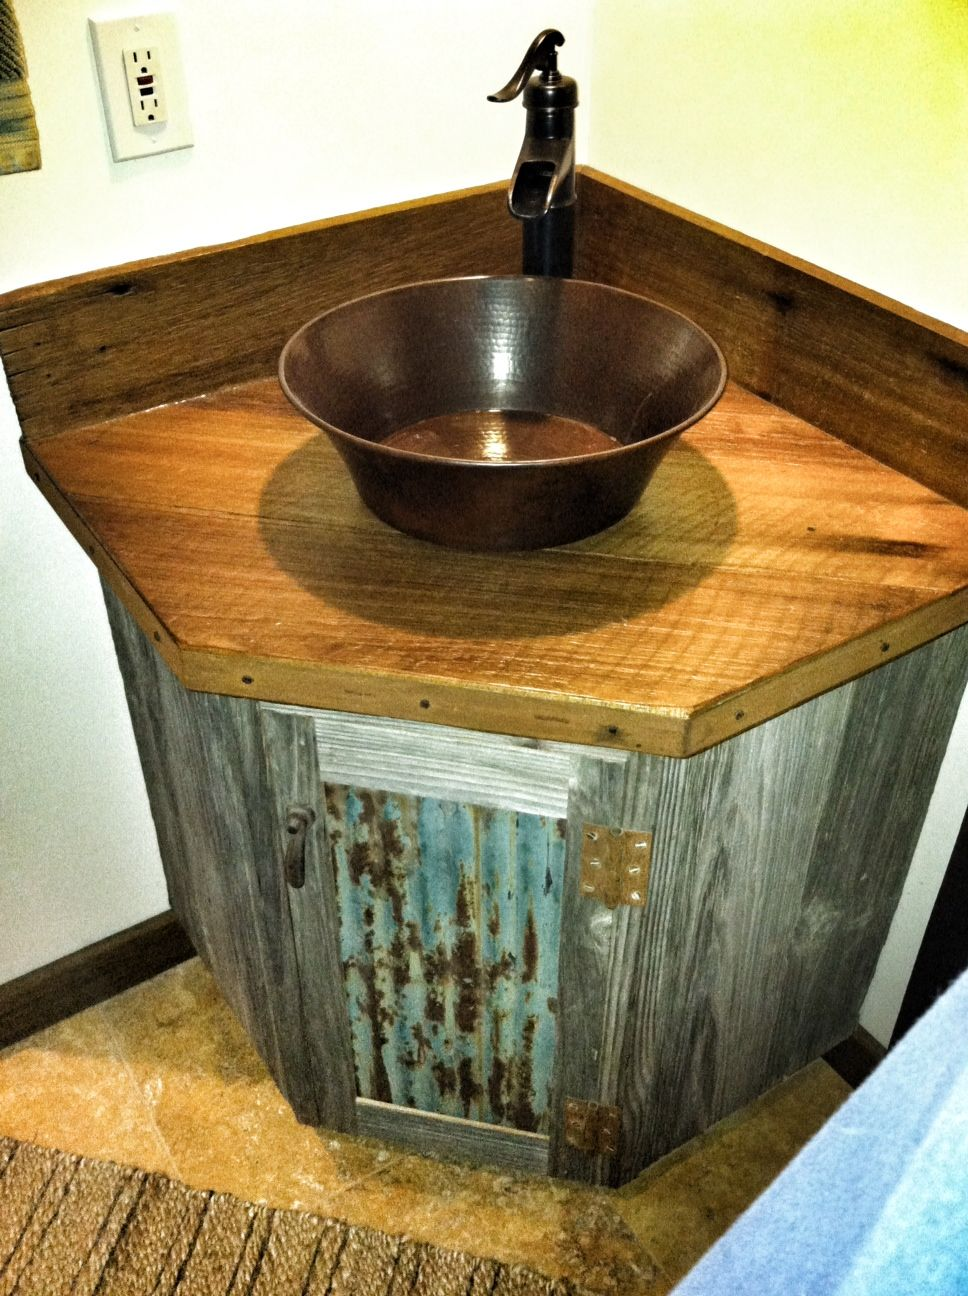 Rustic Bathroom Vanities And Sinks Barn Wood Bathroom Vanity I Like The Door On This Would Be Cute